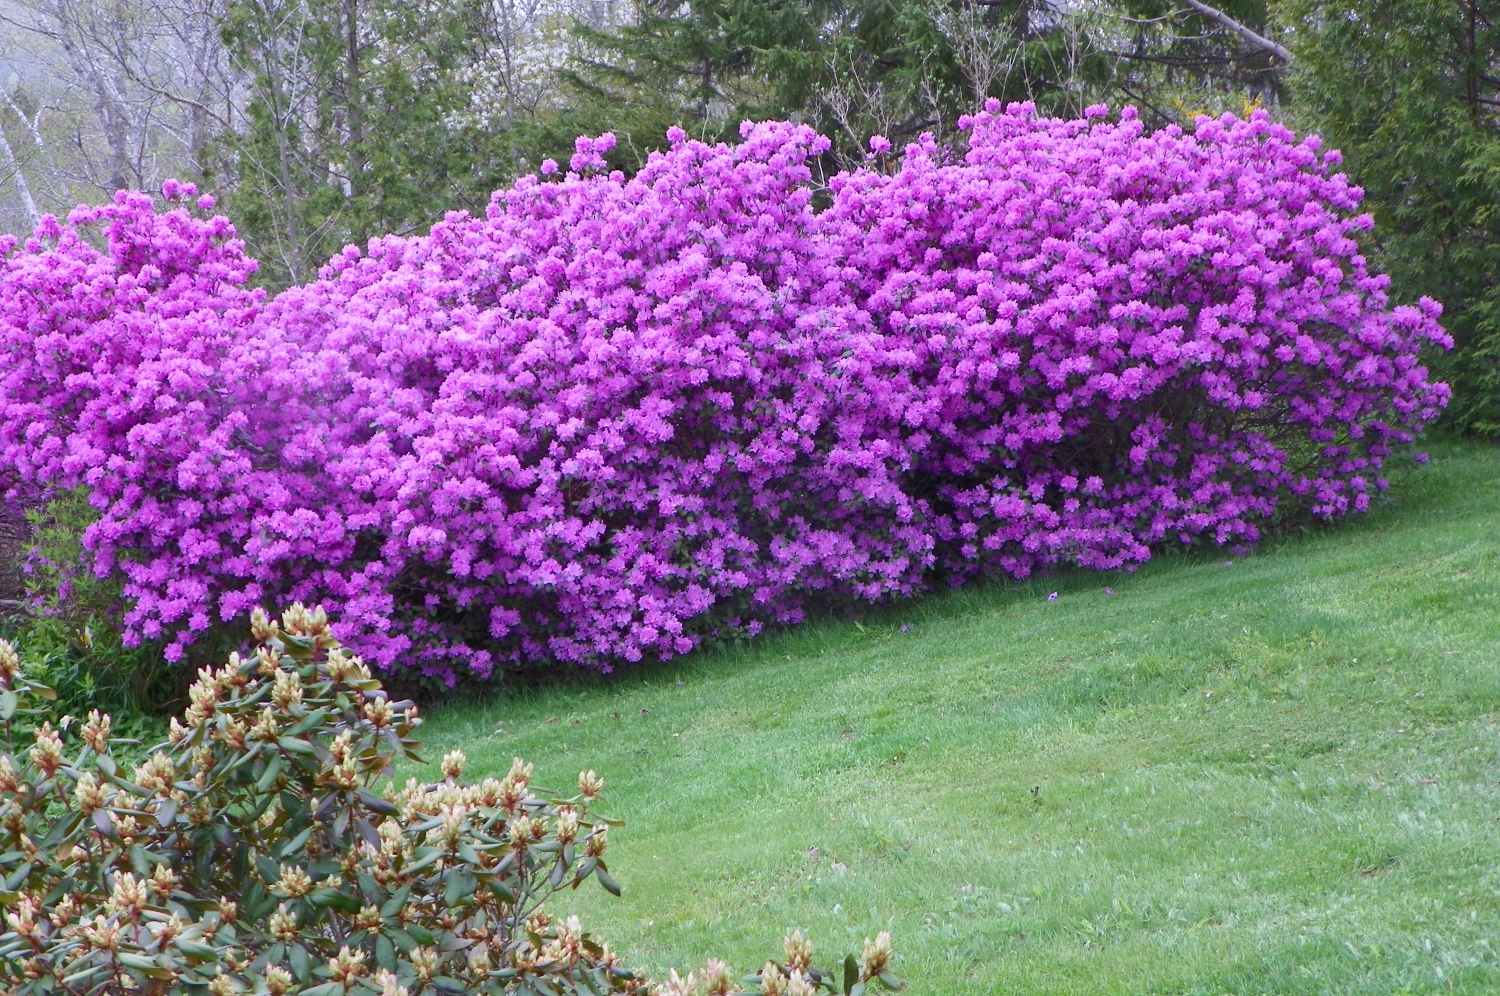 Hedge of rhododendron.